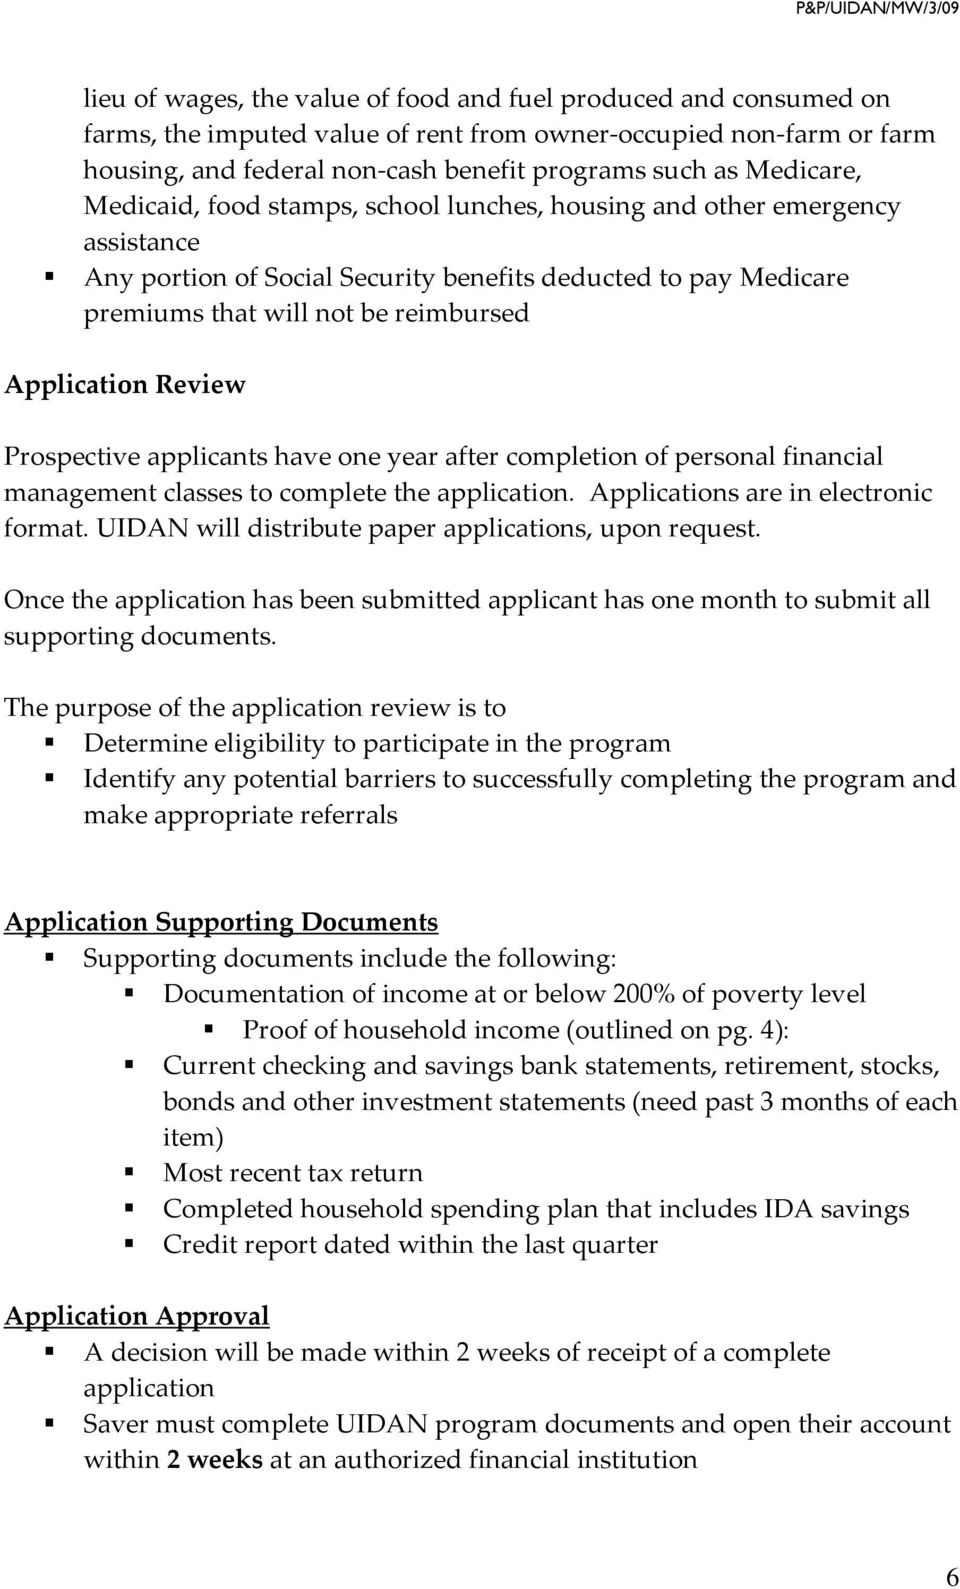 Application Review Prospective applicants have one year after completion of personal financial management classes to complete the application. Applications are in electronic format.